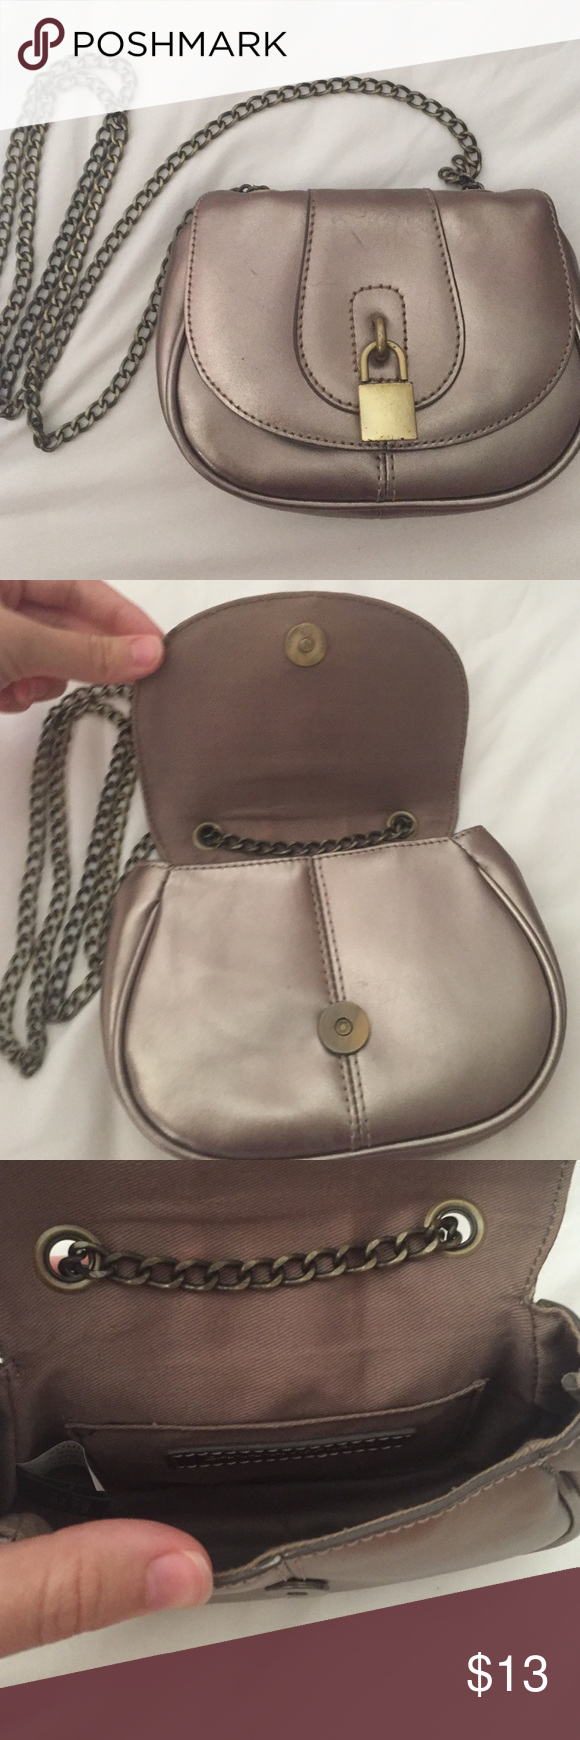 Shiny Pewter Banana Republic Lock Crossbody Perfect for a night out! Great condition except for a few minor scrapes on front. Banana Republic Bags Crossbody Bags